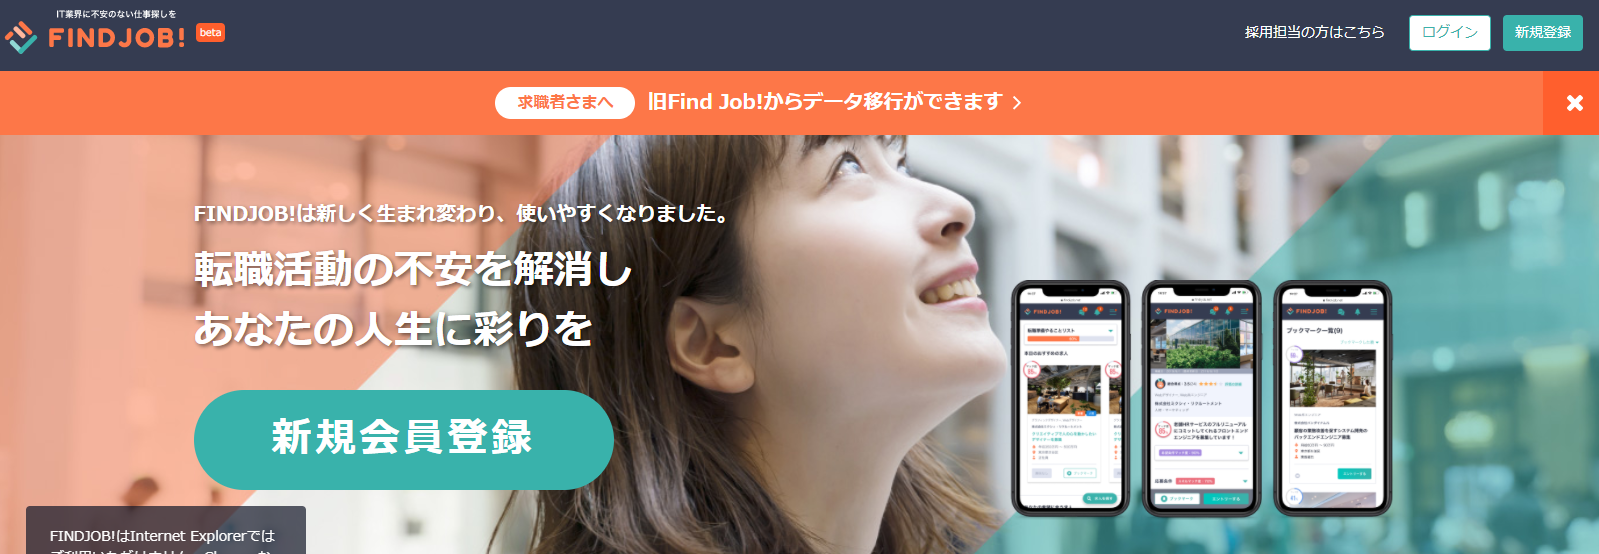 新FindJob!TOP